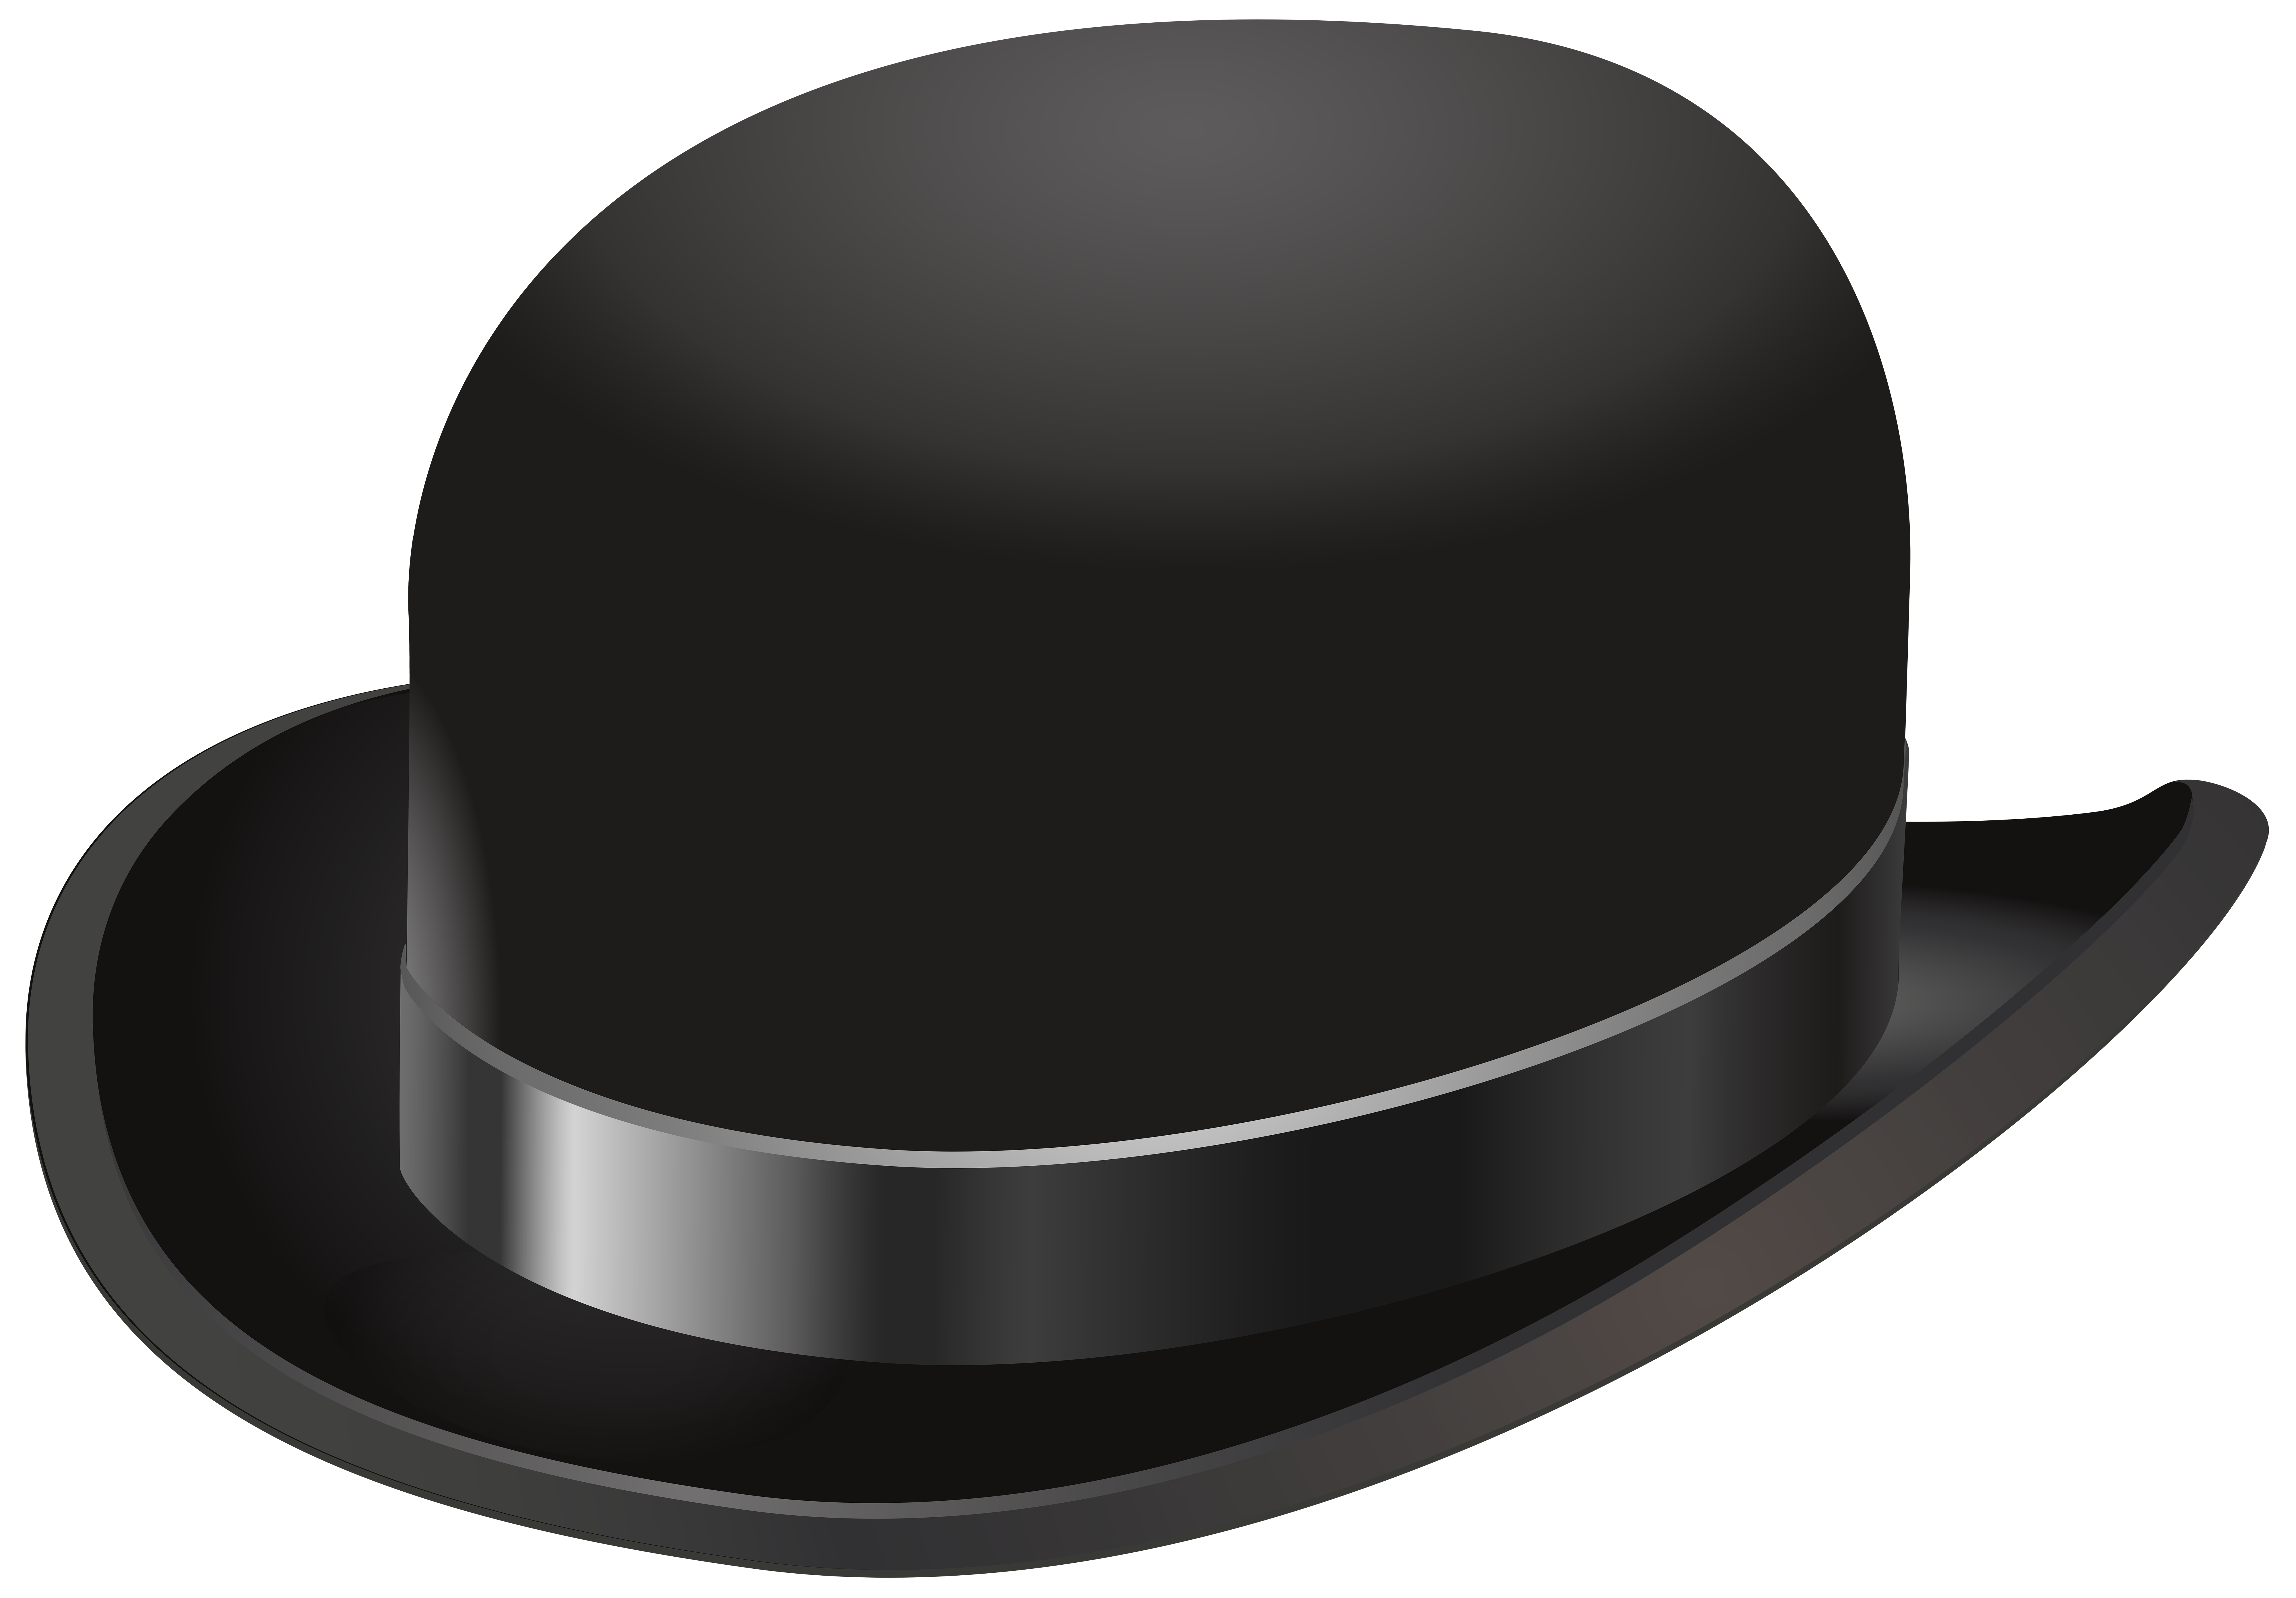 Fedora clipart headwear. Clothing png images free